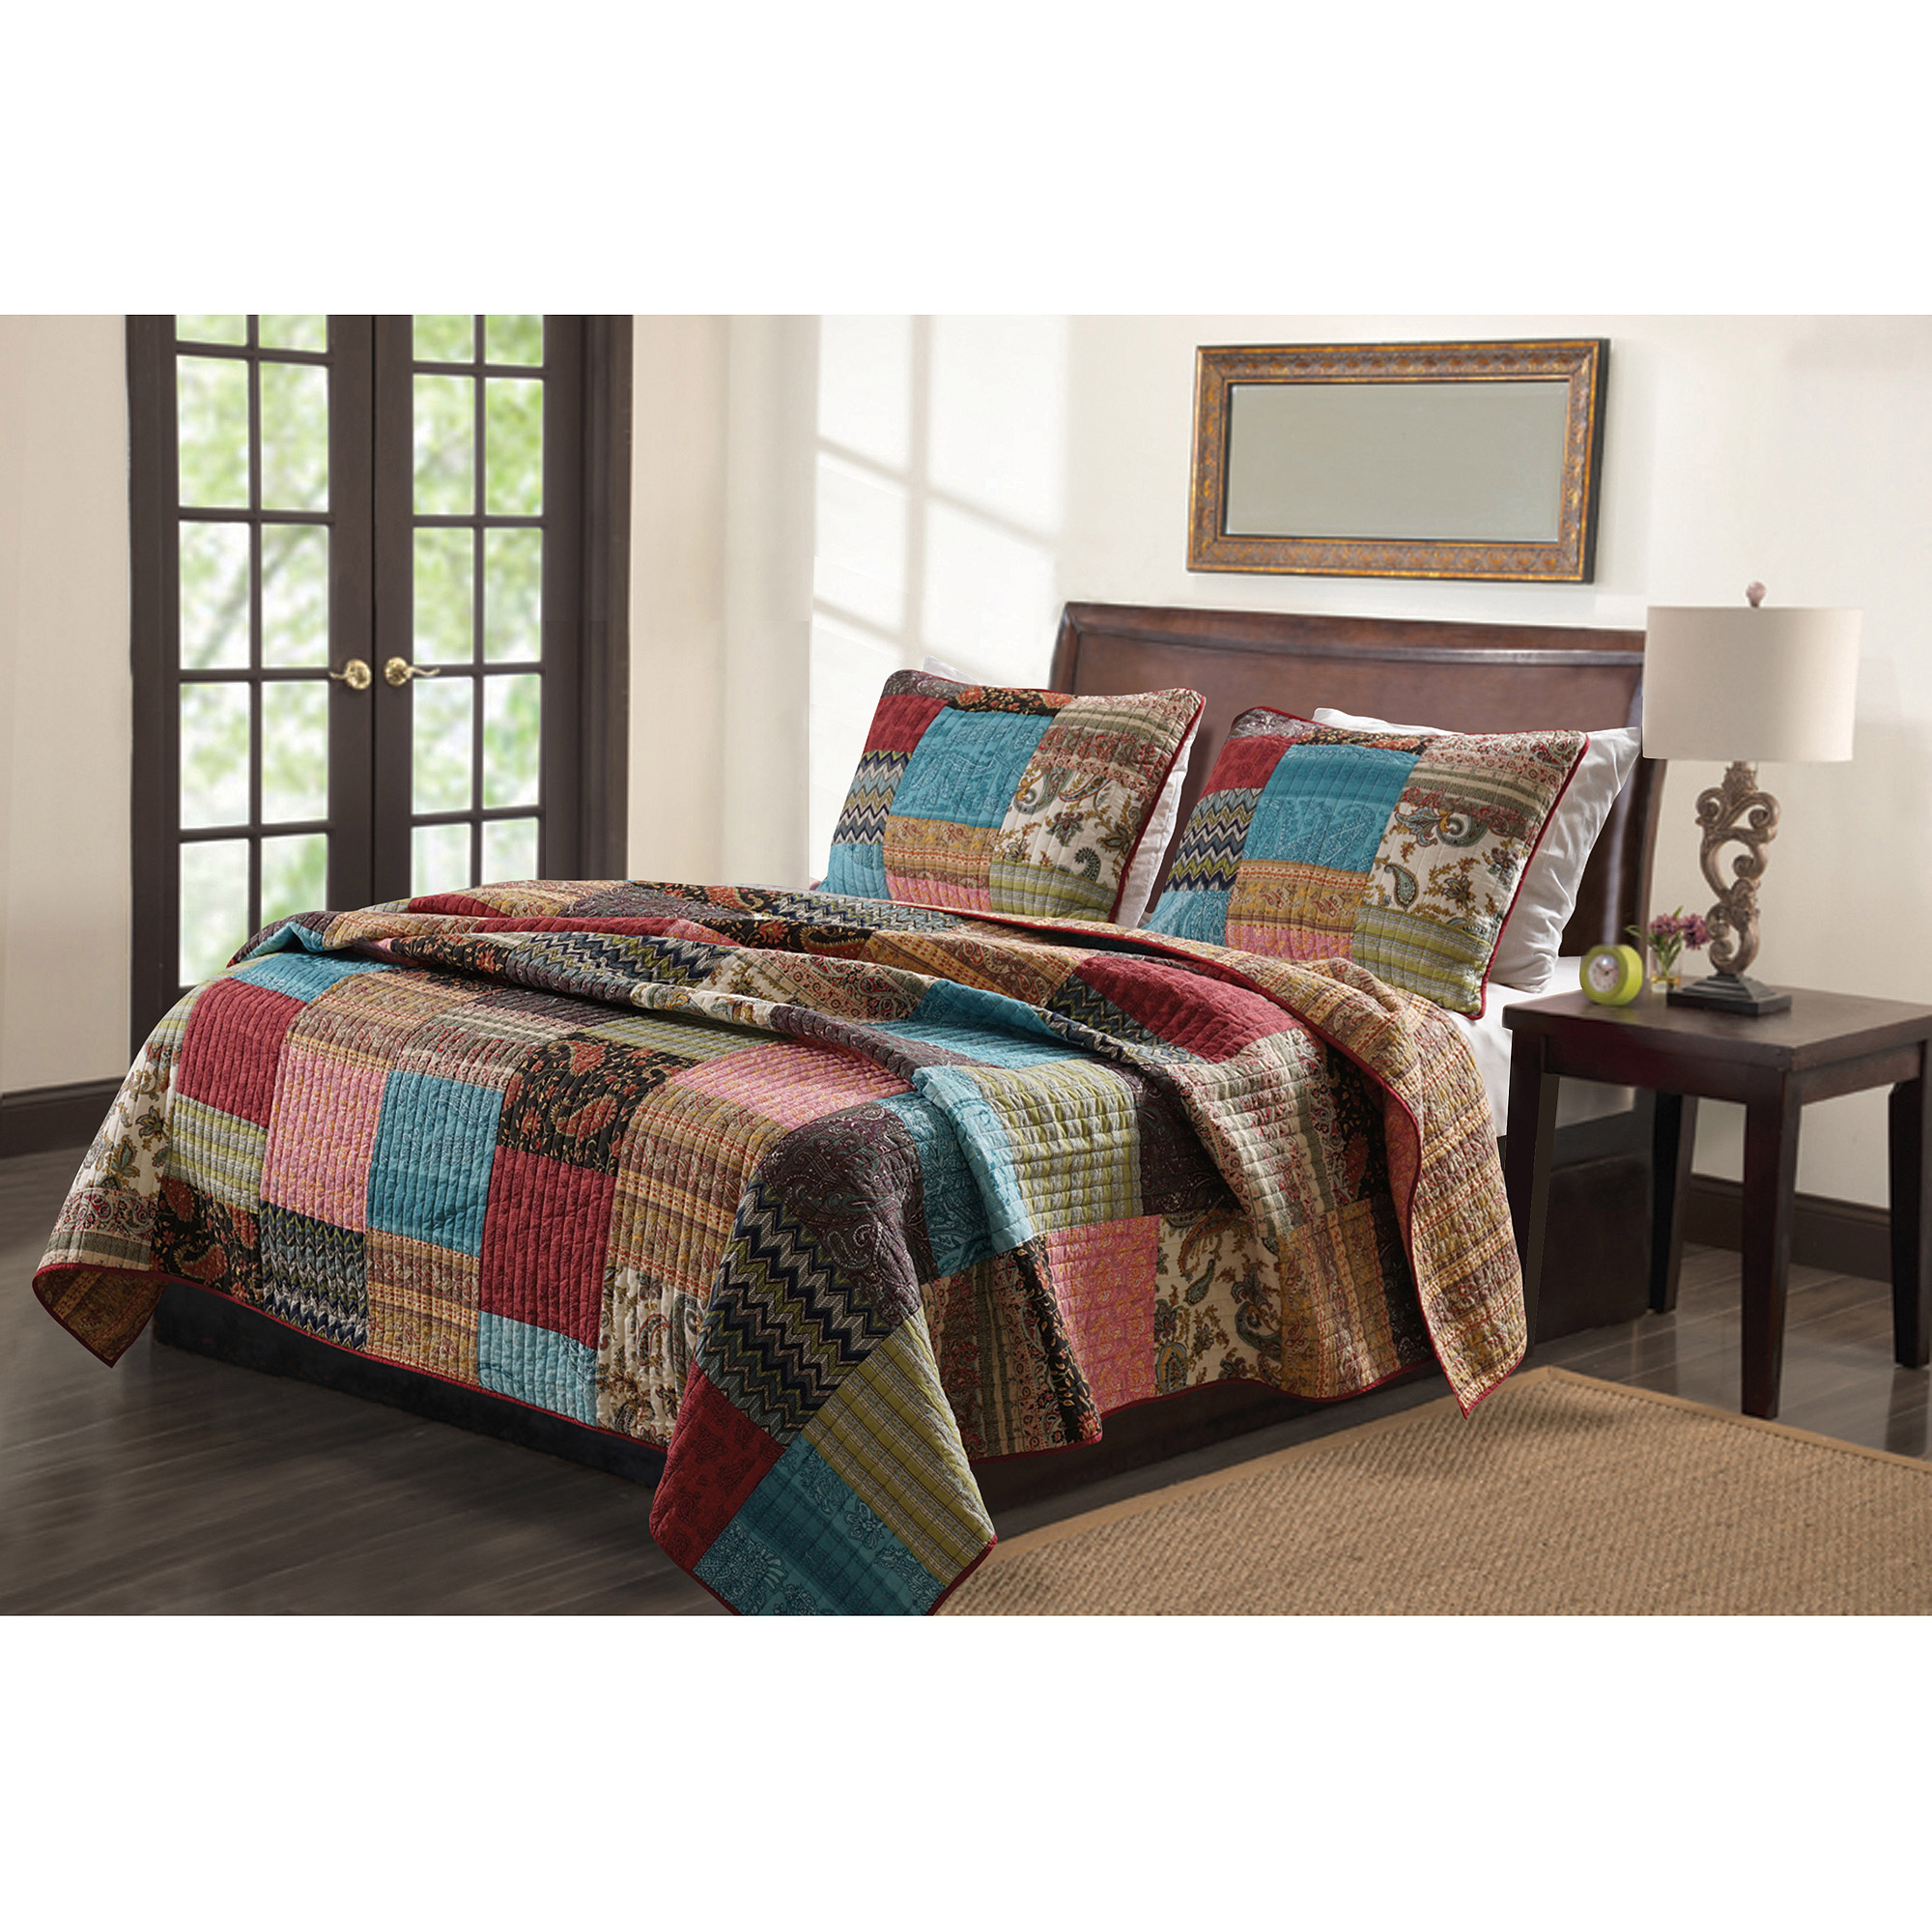 Bed sheet set with quilt - Bed Sheet Set With Quilt 58